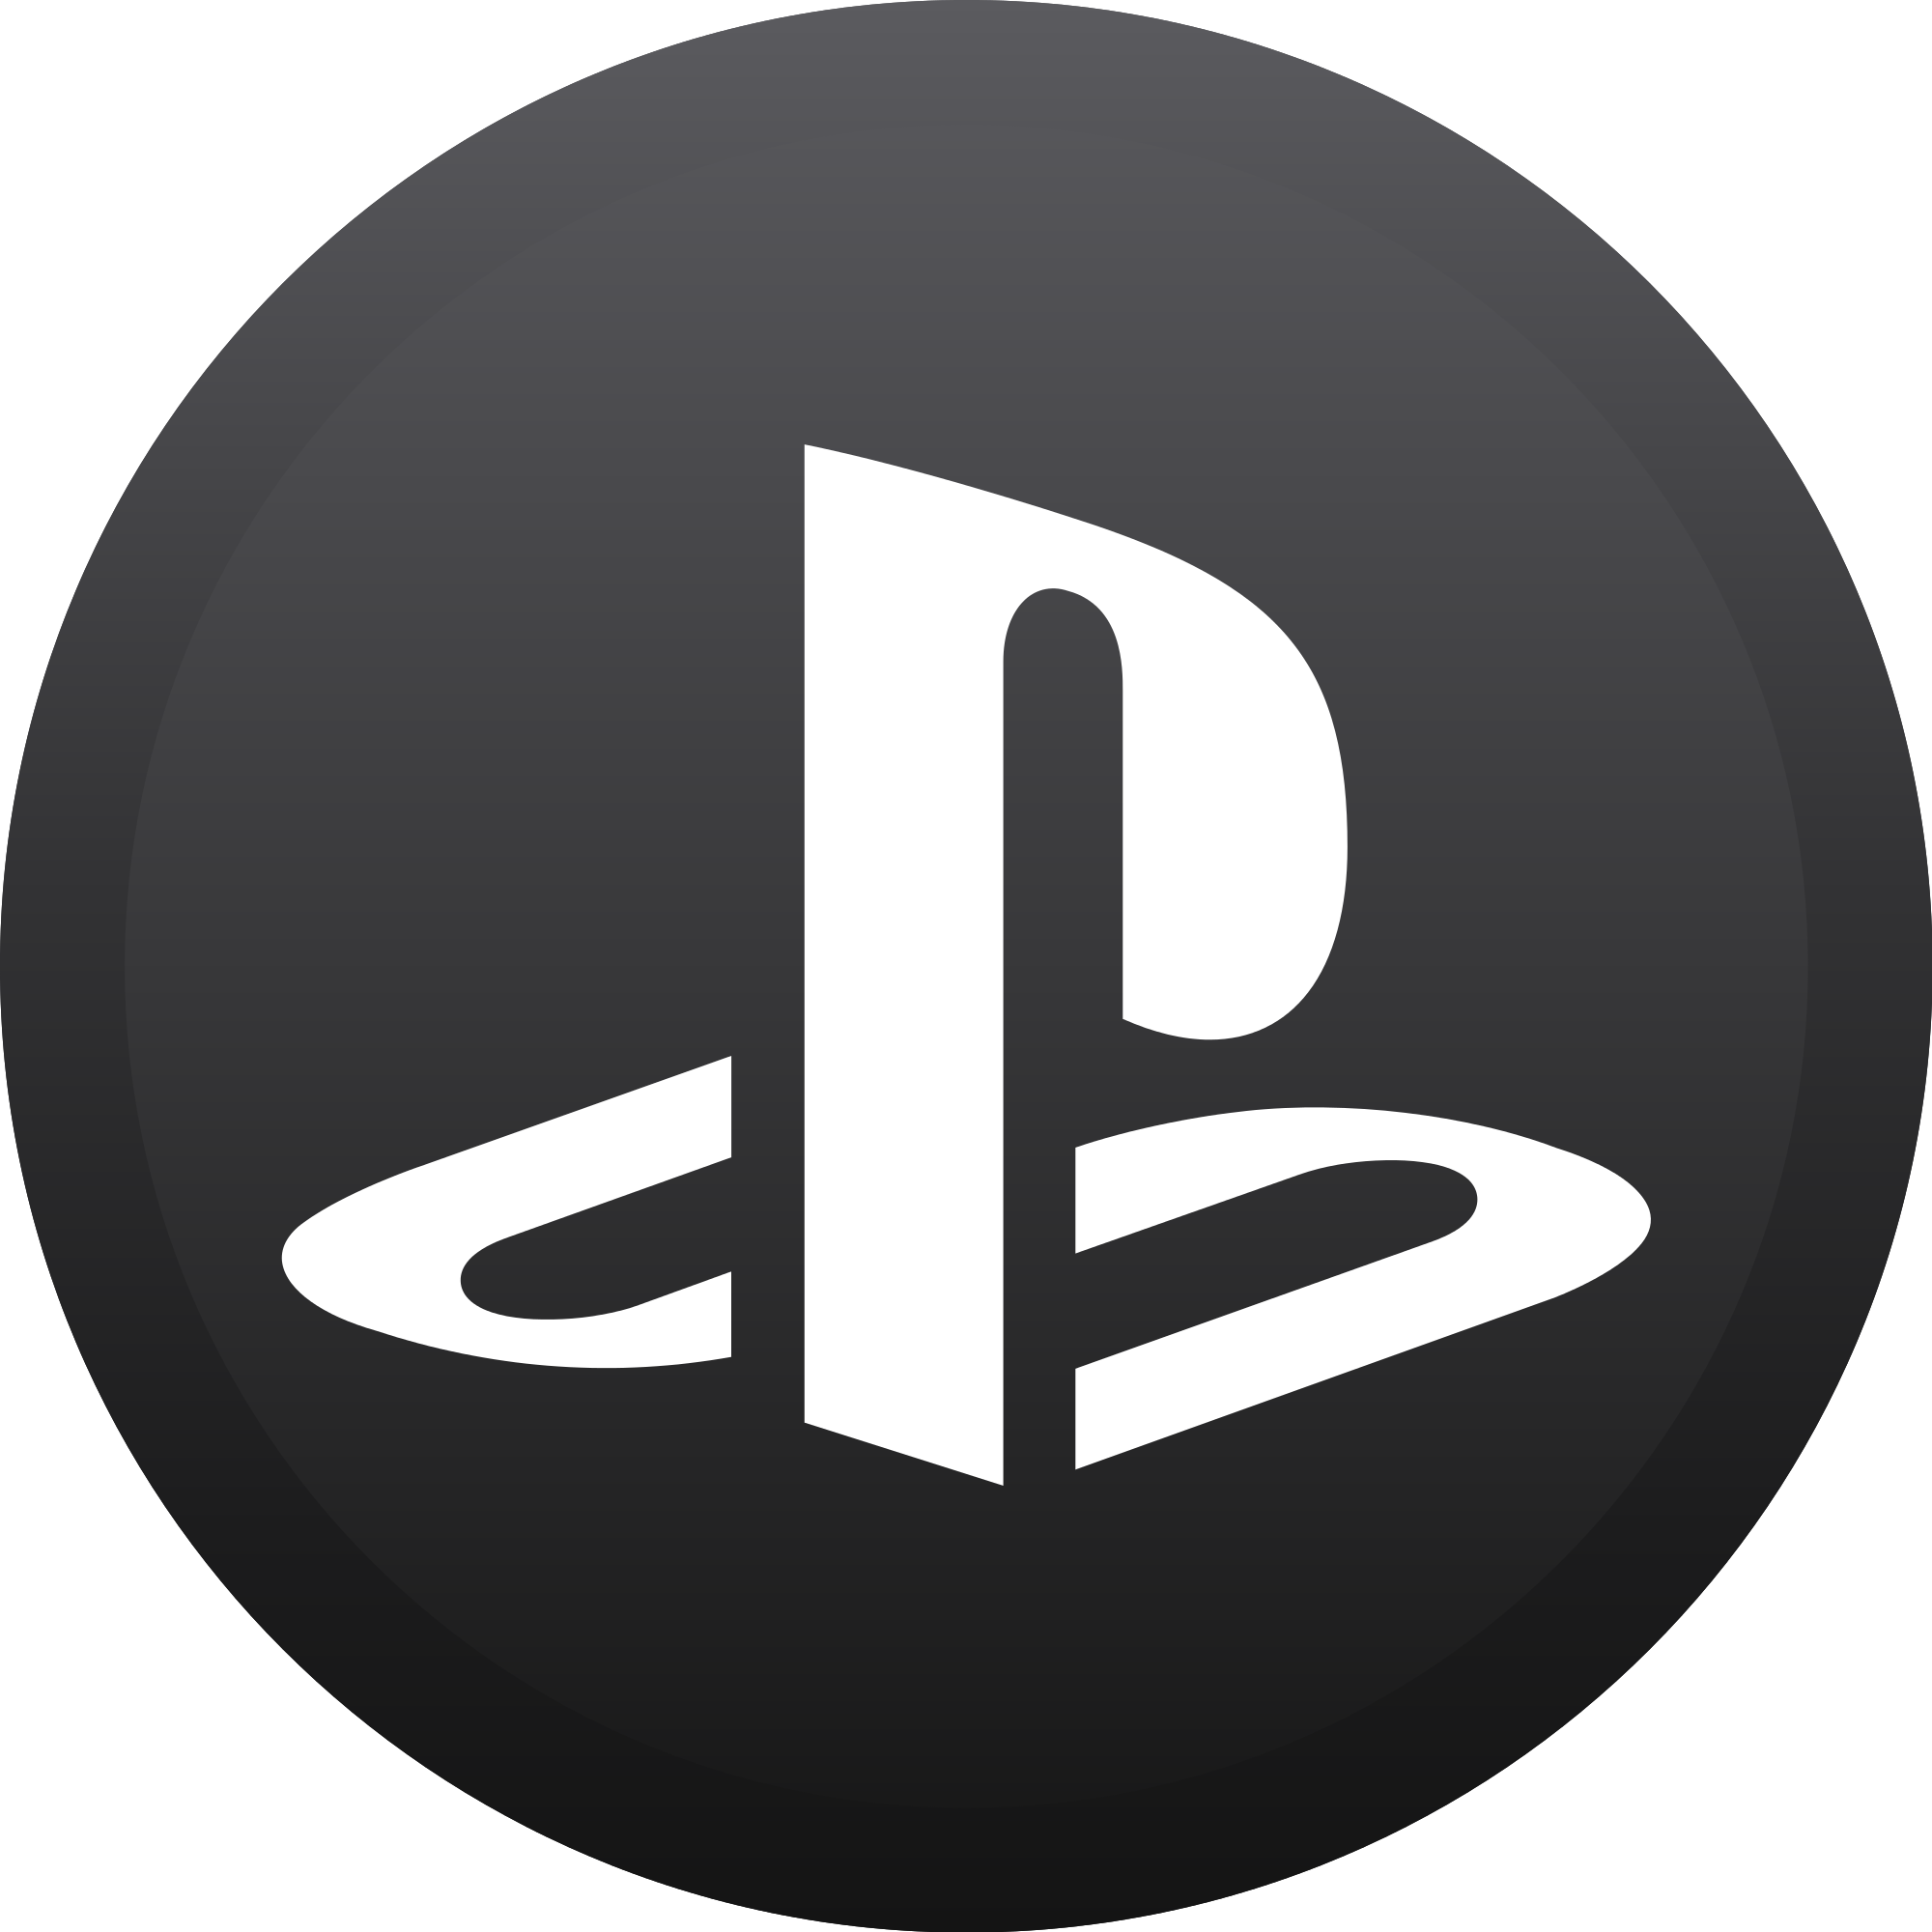 Playstation buttons png. File button home svg